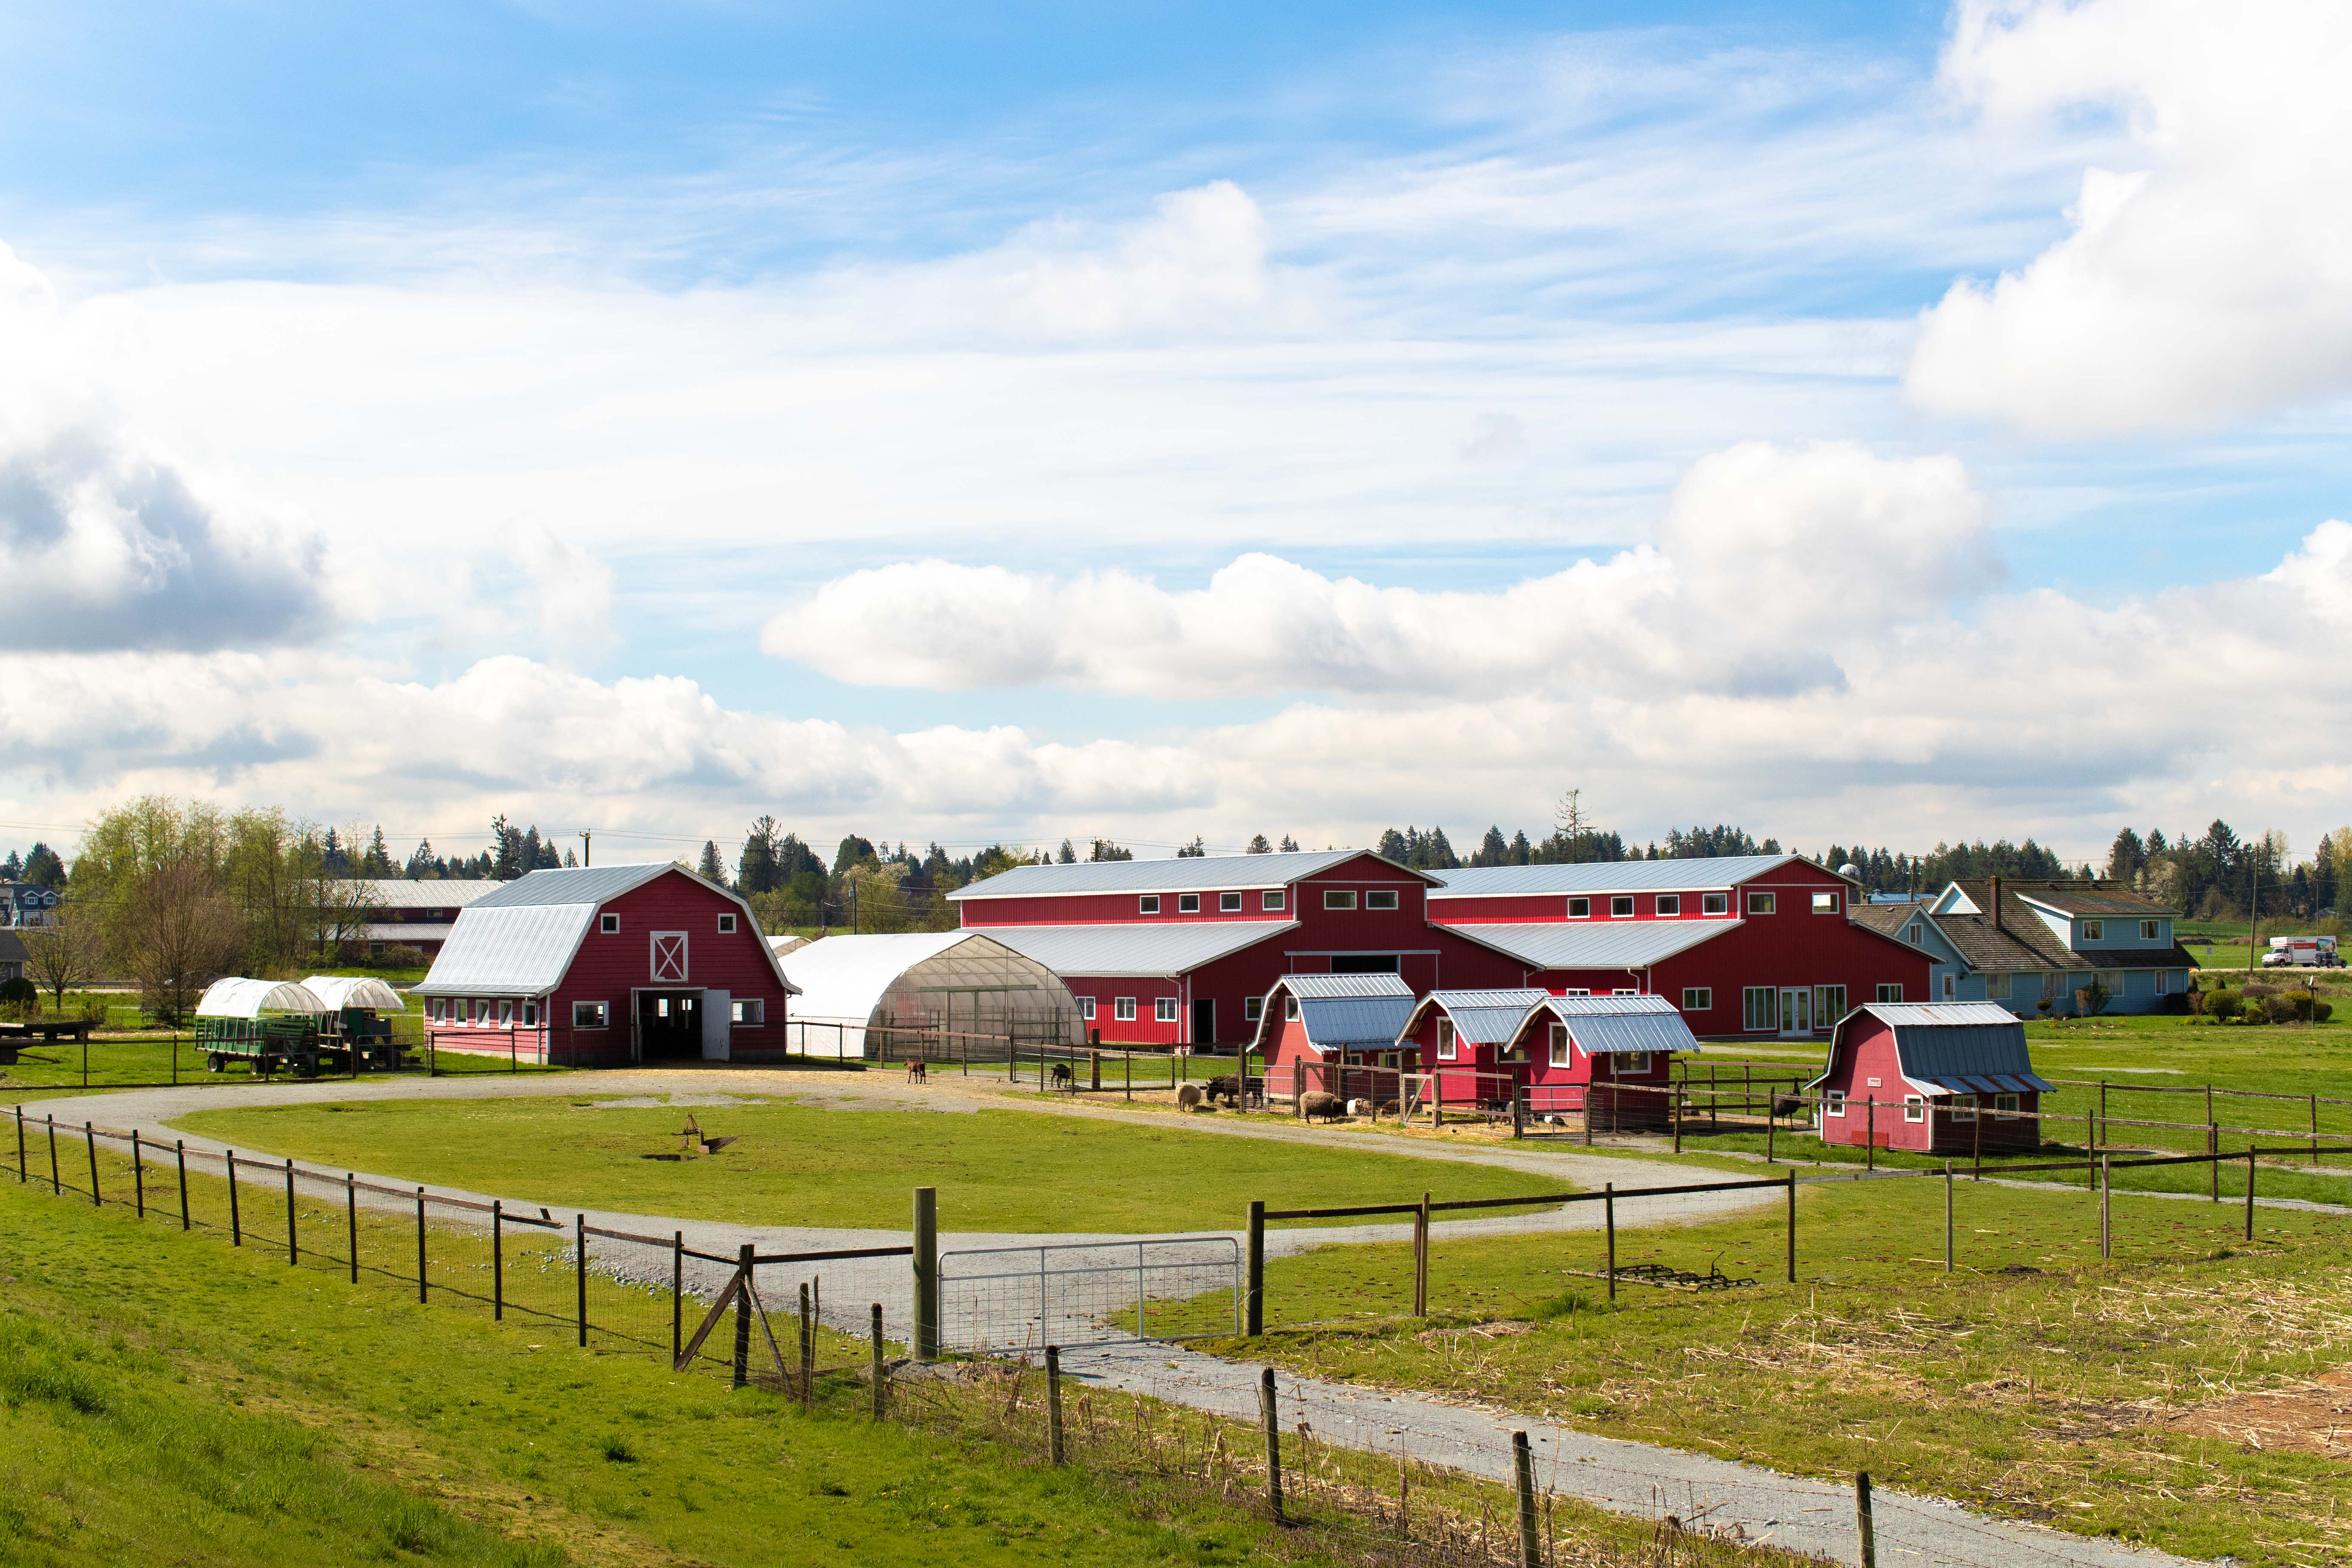 https://highpointeliving.ca/wp-content/uploads/2019/08/One-of-many-local-farms-A45I1897.jpg